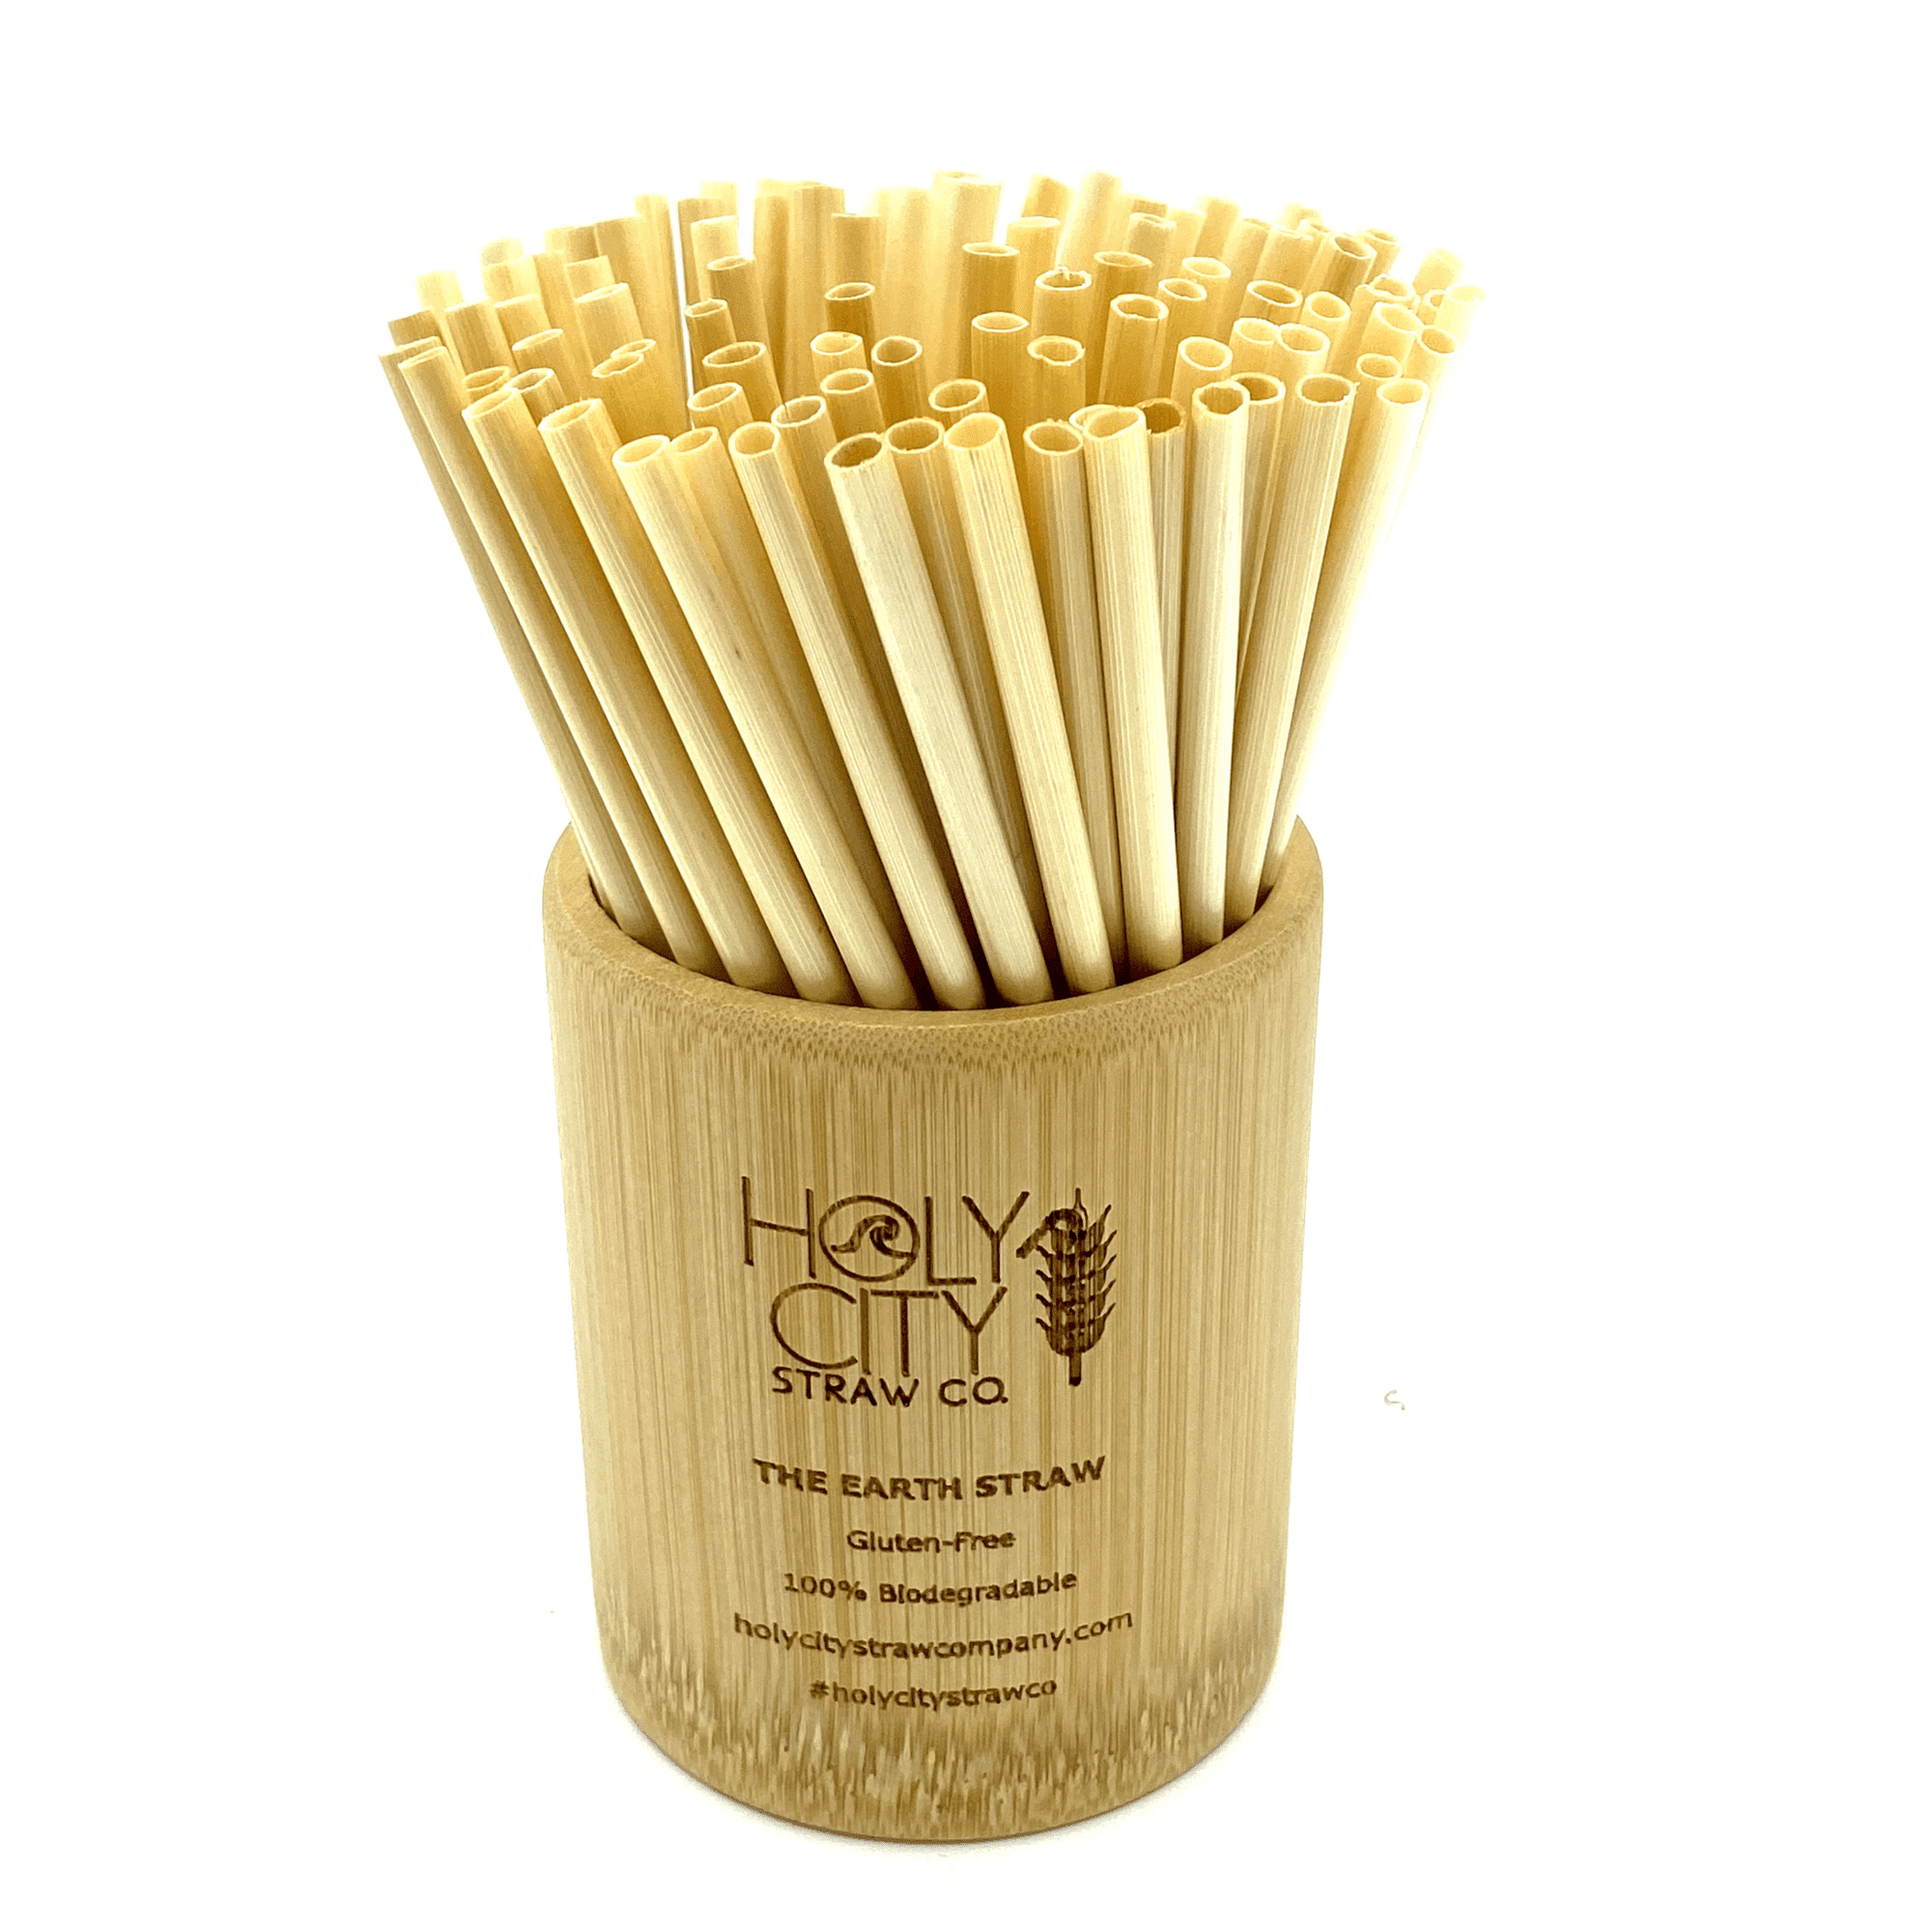 Holy City Straw Company Branded Straw Holder with Cocktail wheat stem straws inside of the cup